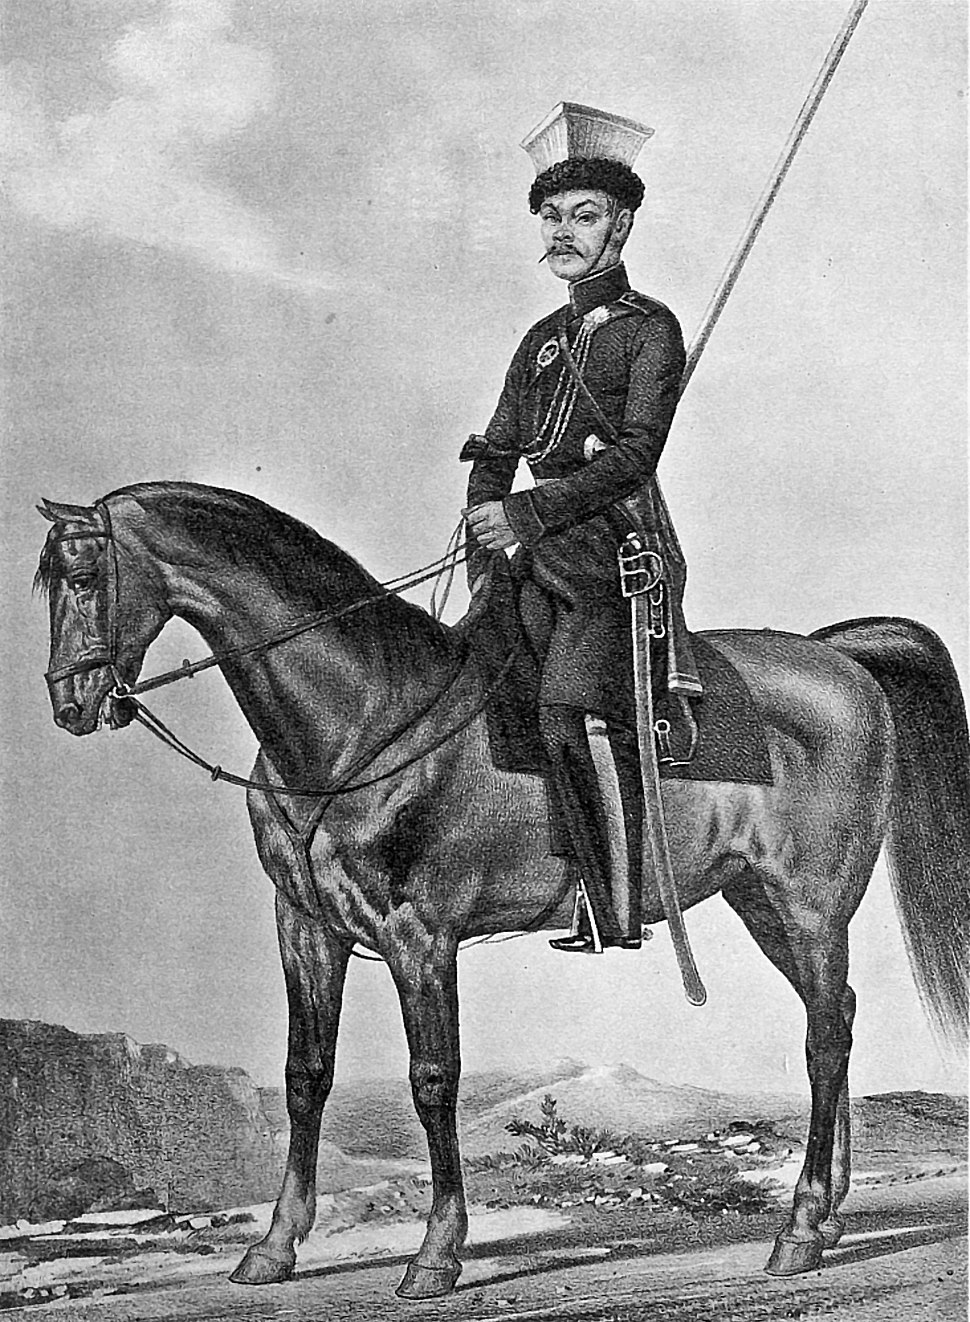 18 2455 Book illustrations of Historical description of the clothes and weapons of Russian troops